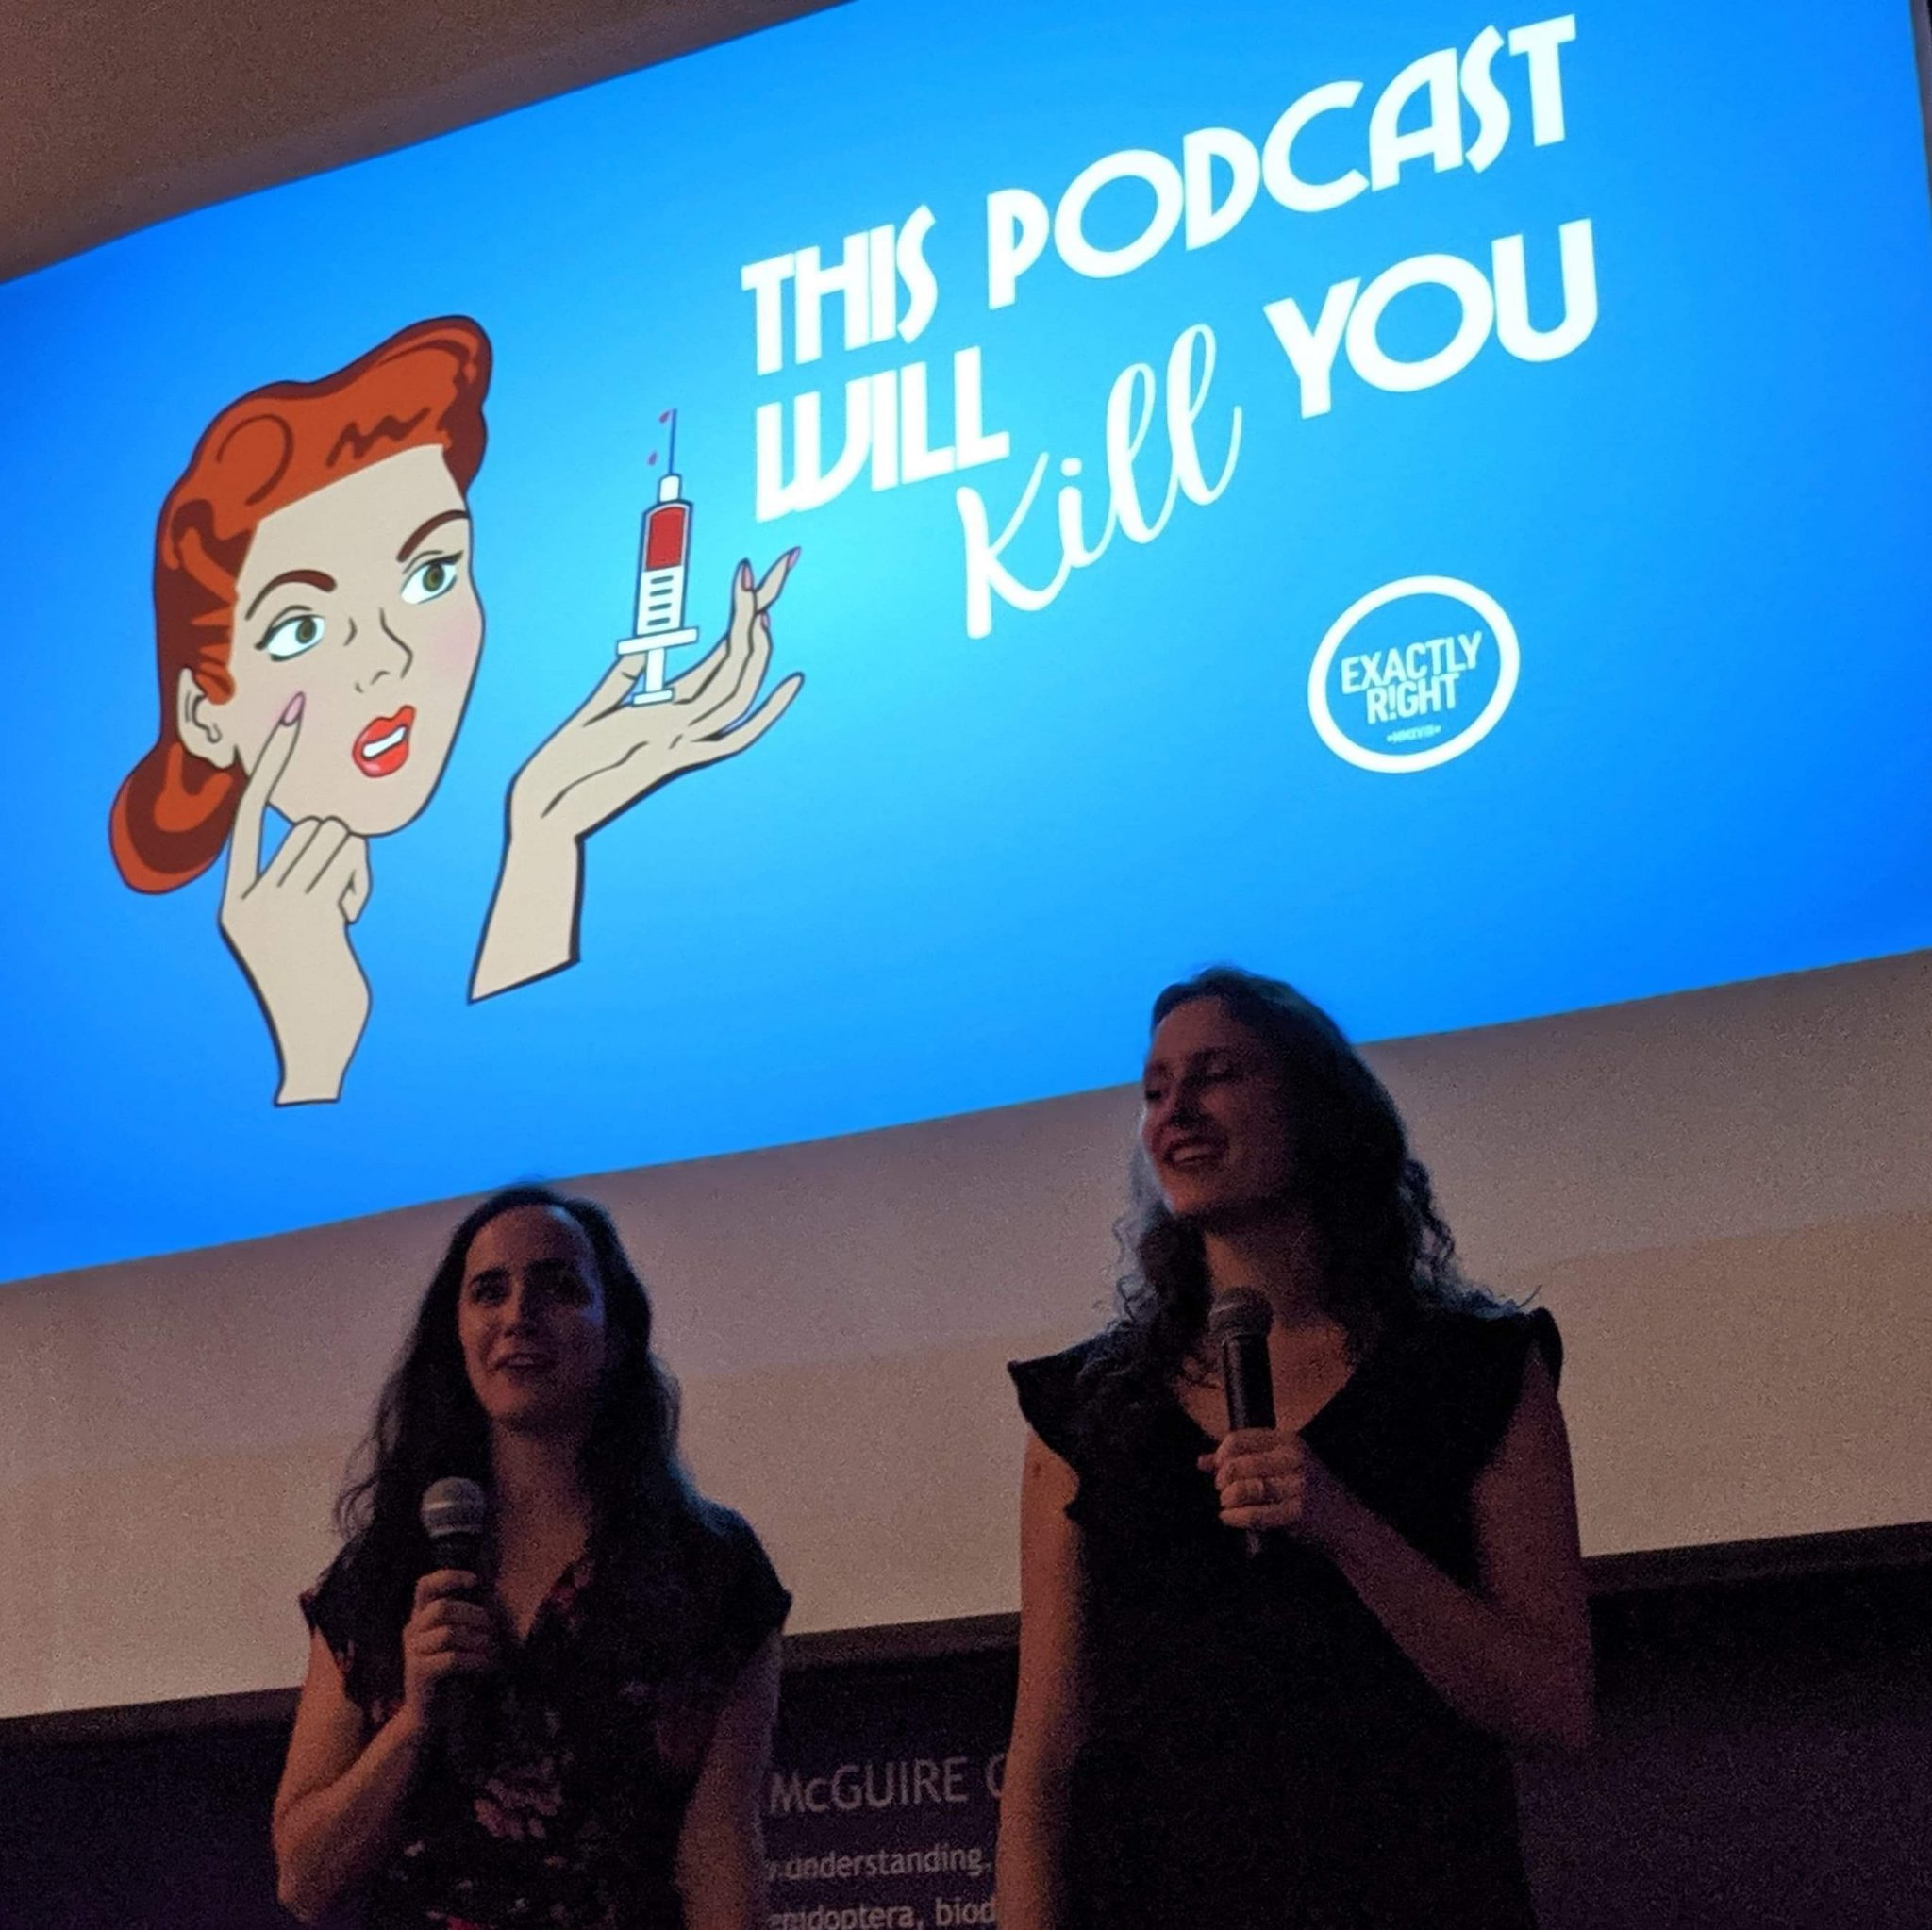 "The Erins sit in front of a screen showing their logo, a woman with red hair in a 50s style holding a needly with the words ""This Podcast Will Kill You"" and the Exactly Right network logo in white on a blue backdrop."